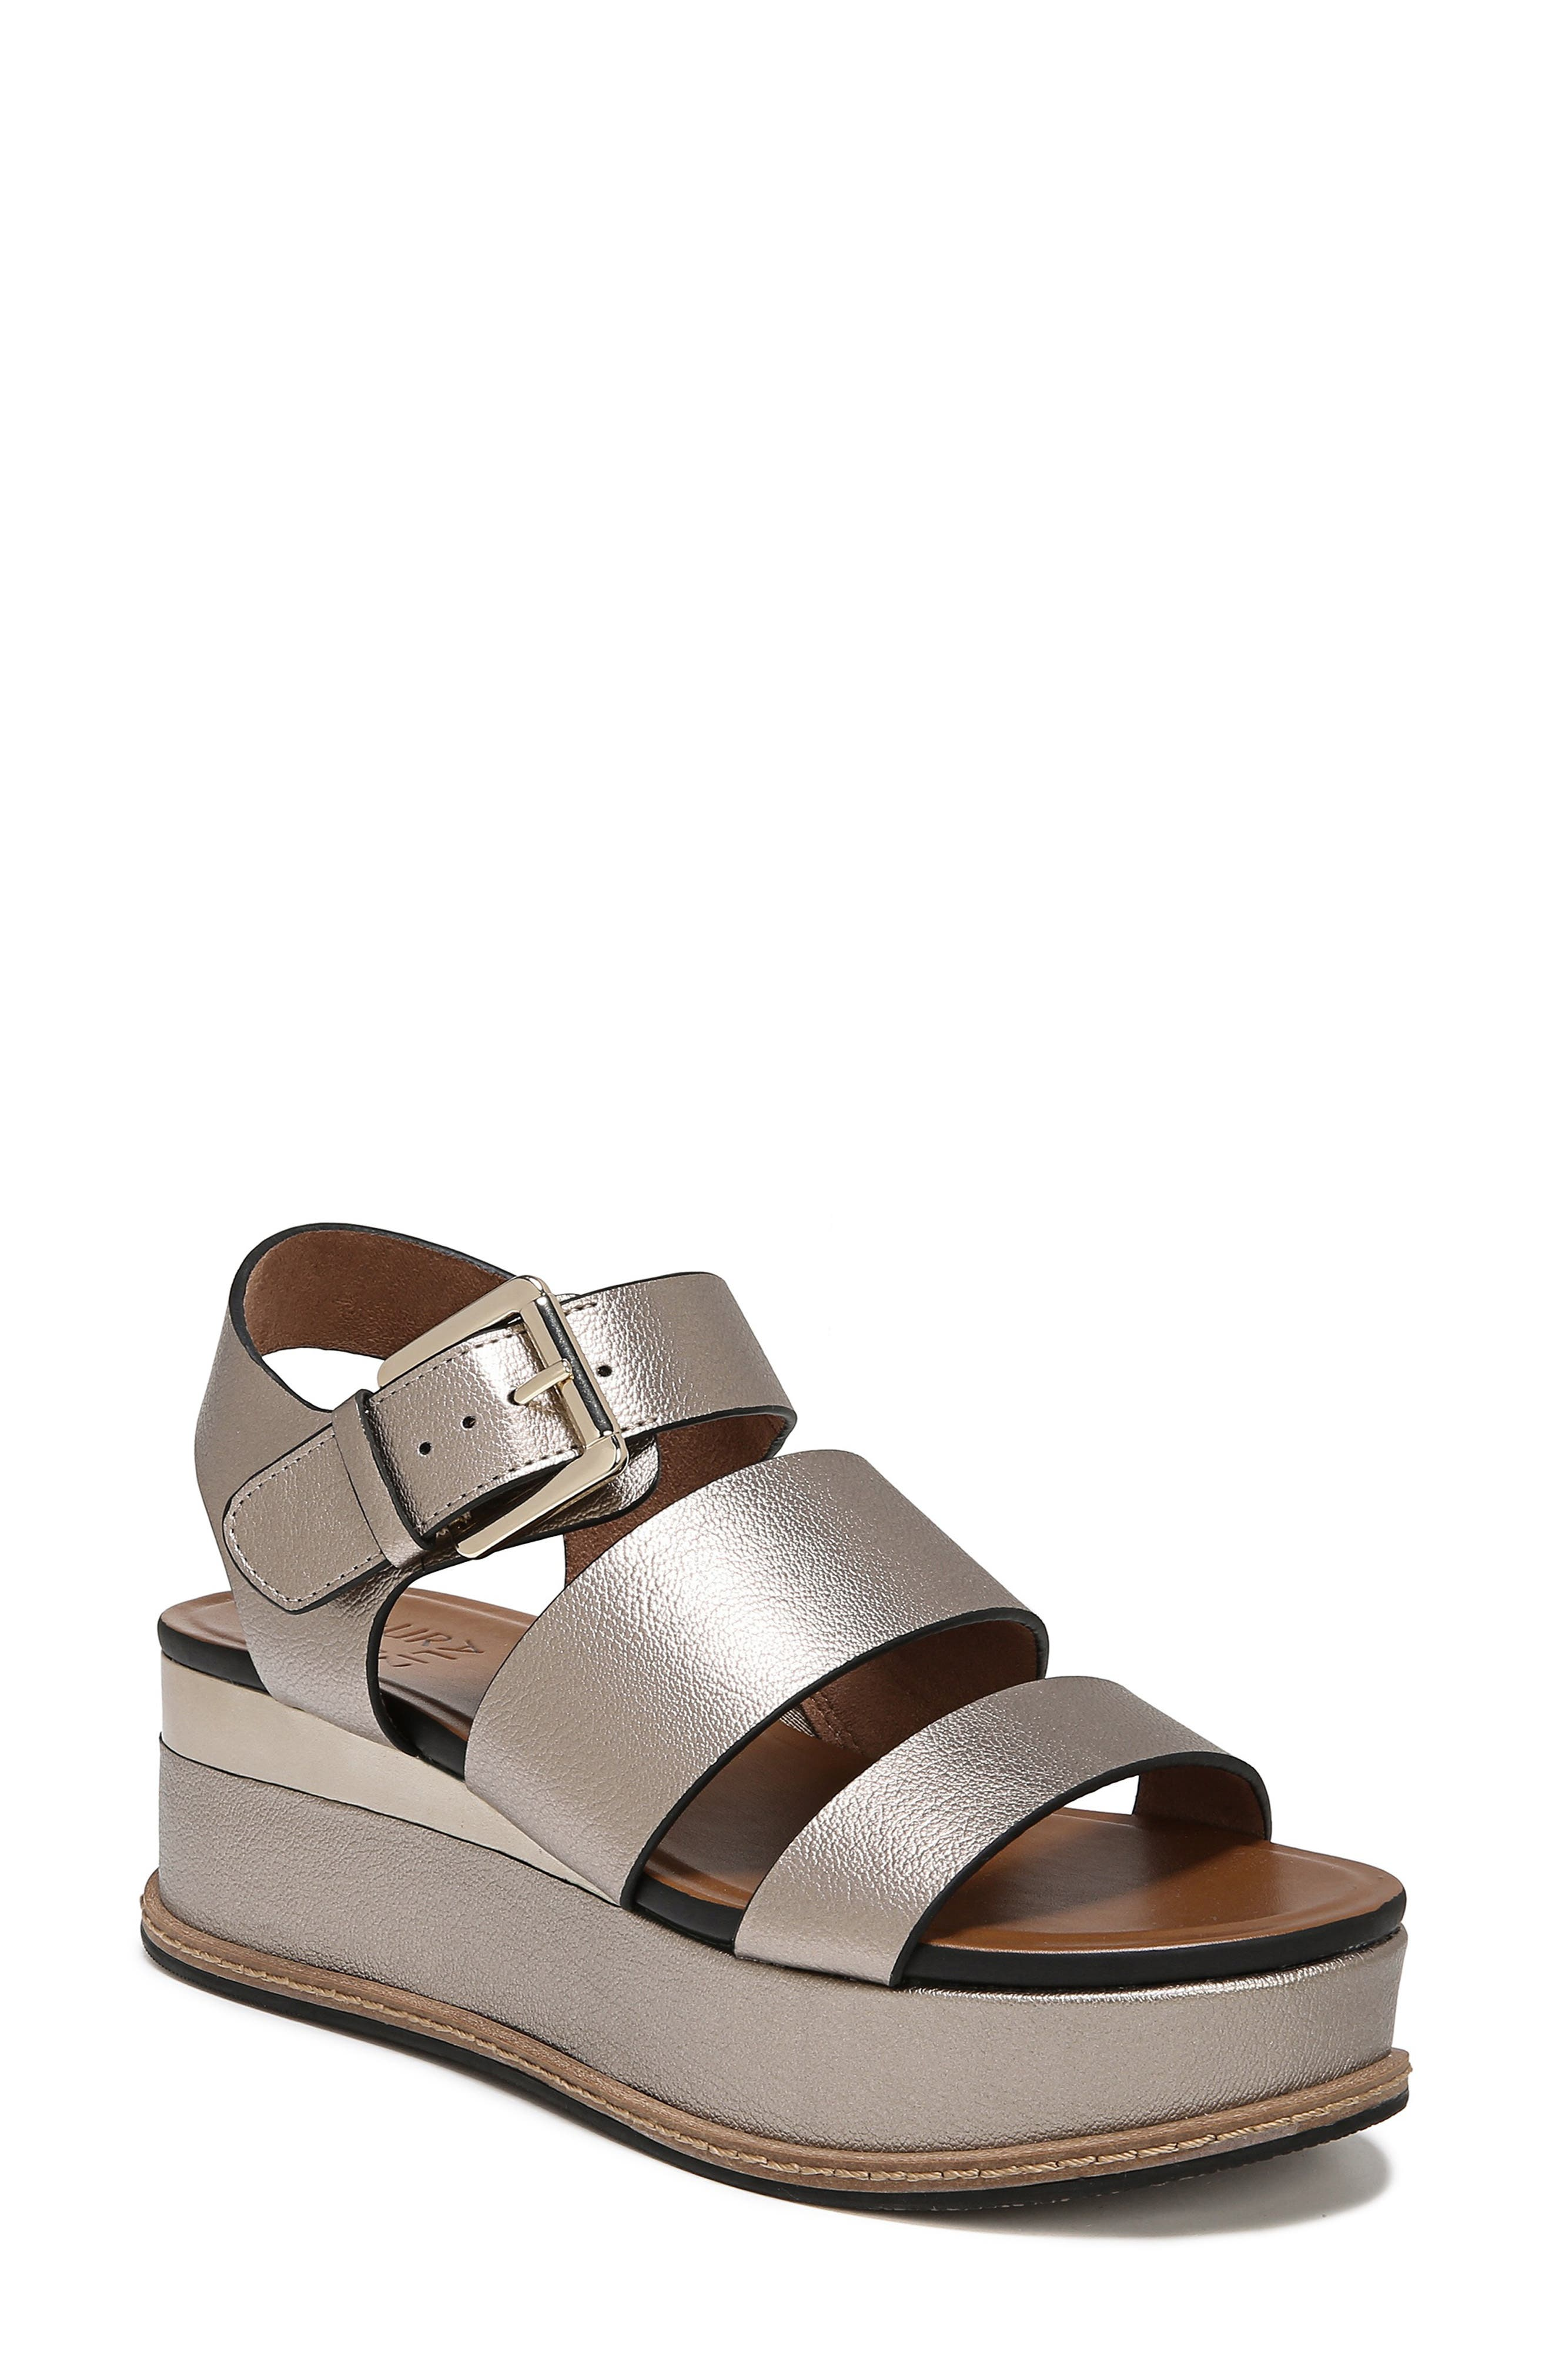 Women S Naturalizer Sandals